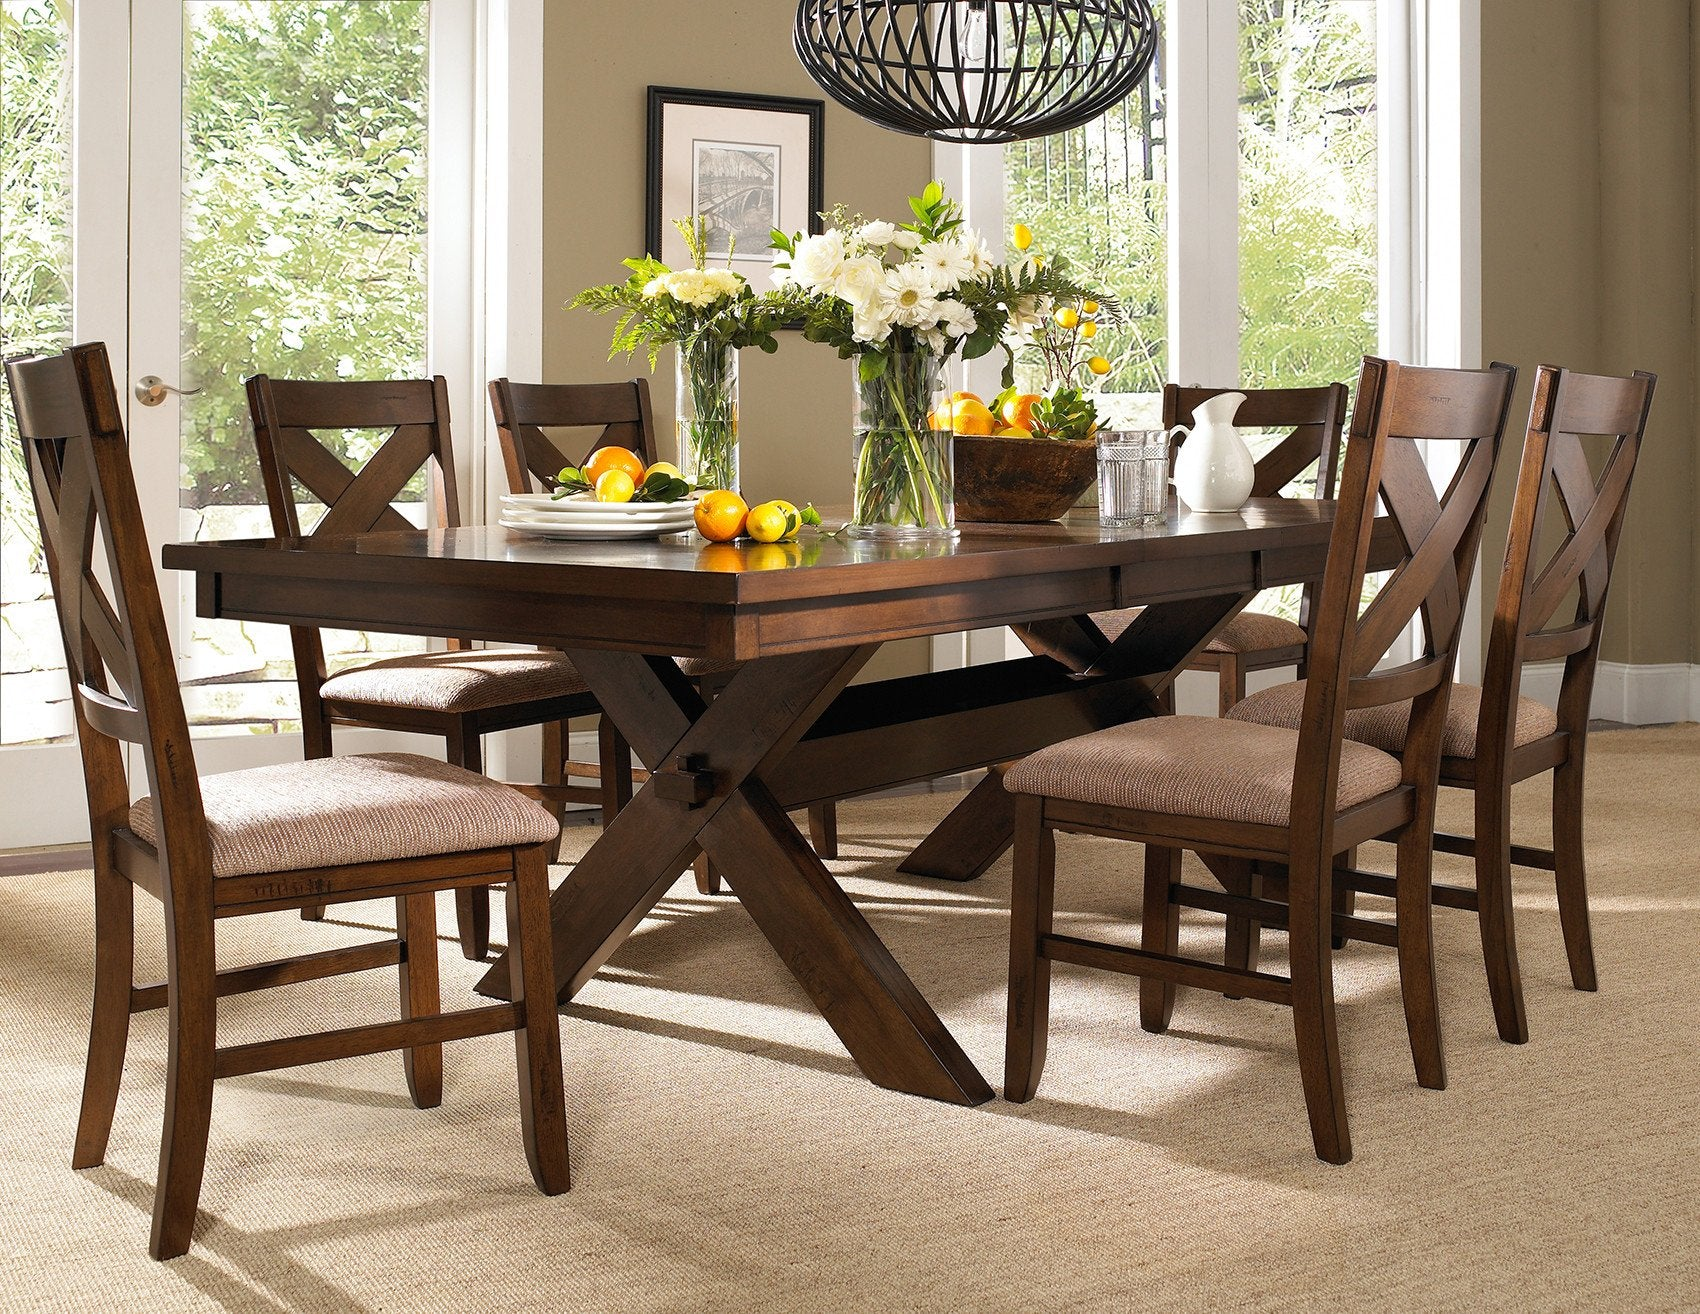 7-Piece Karven Solid Wood Dining Set with Table and 6 Chairs